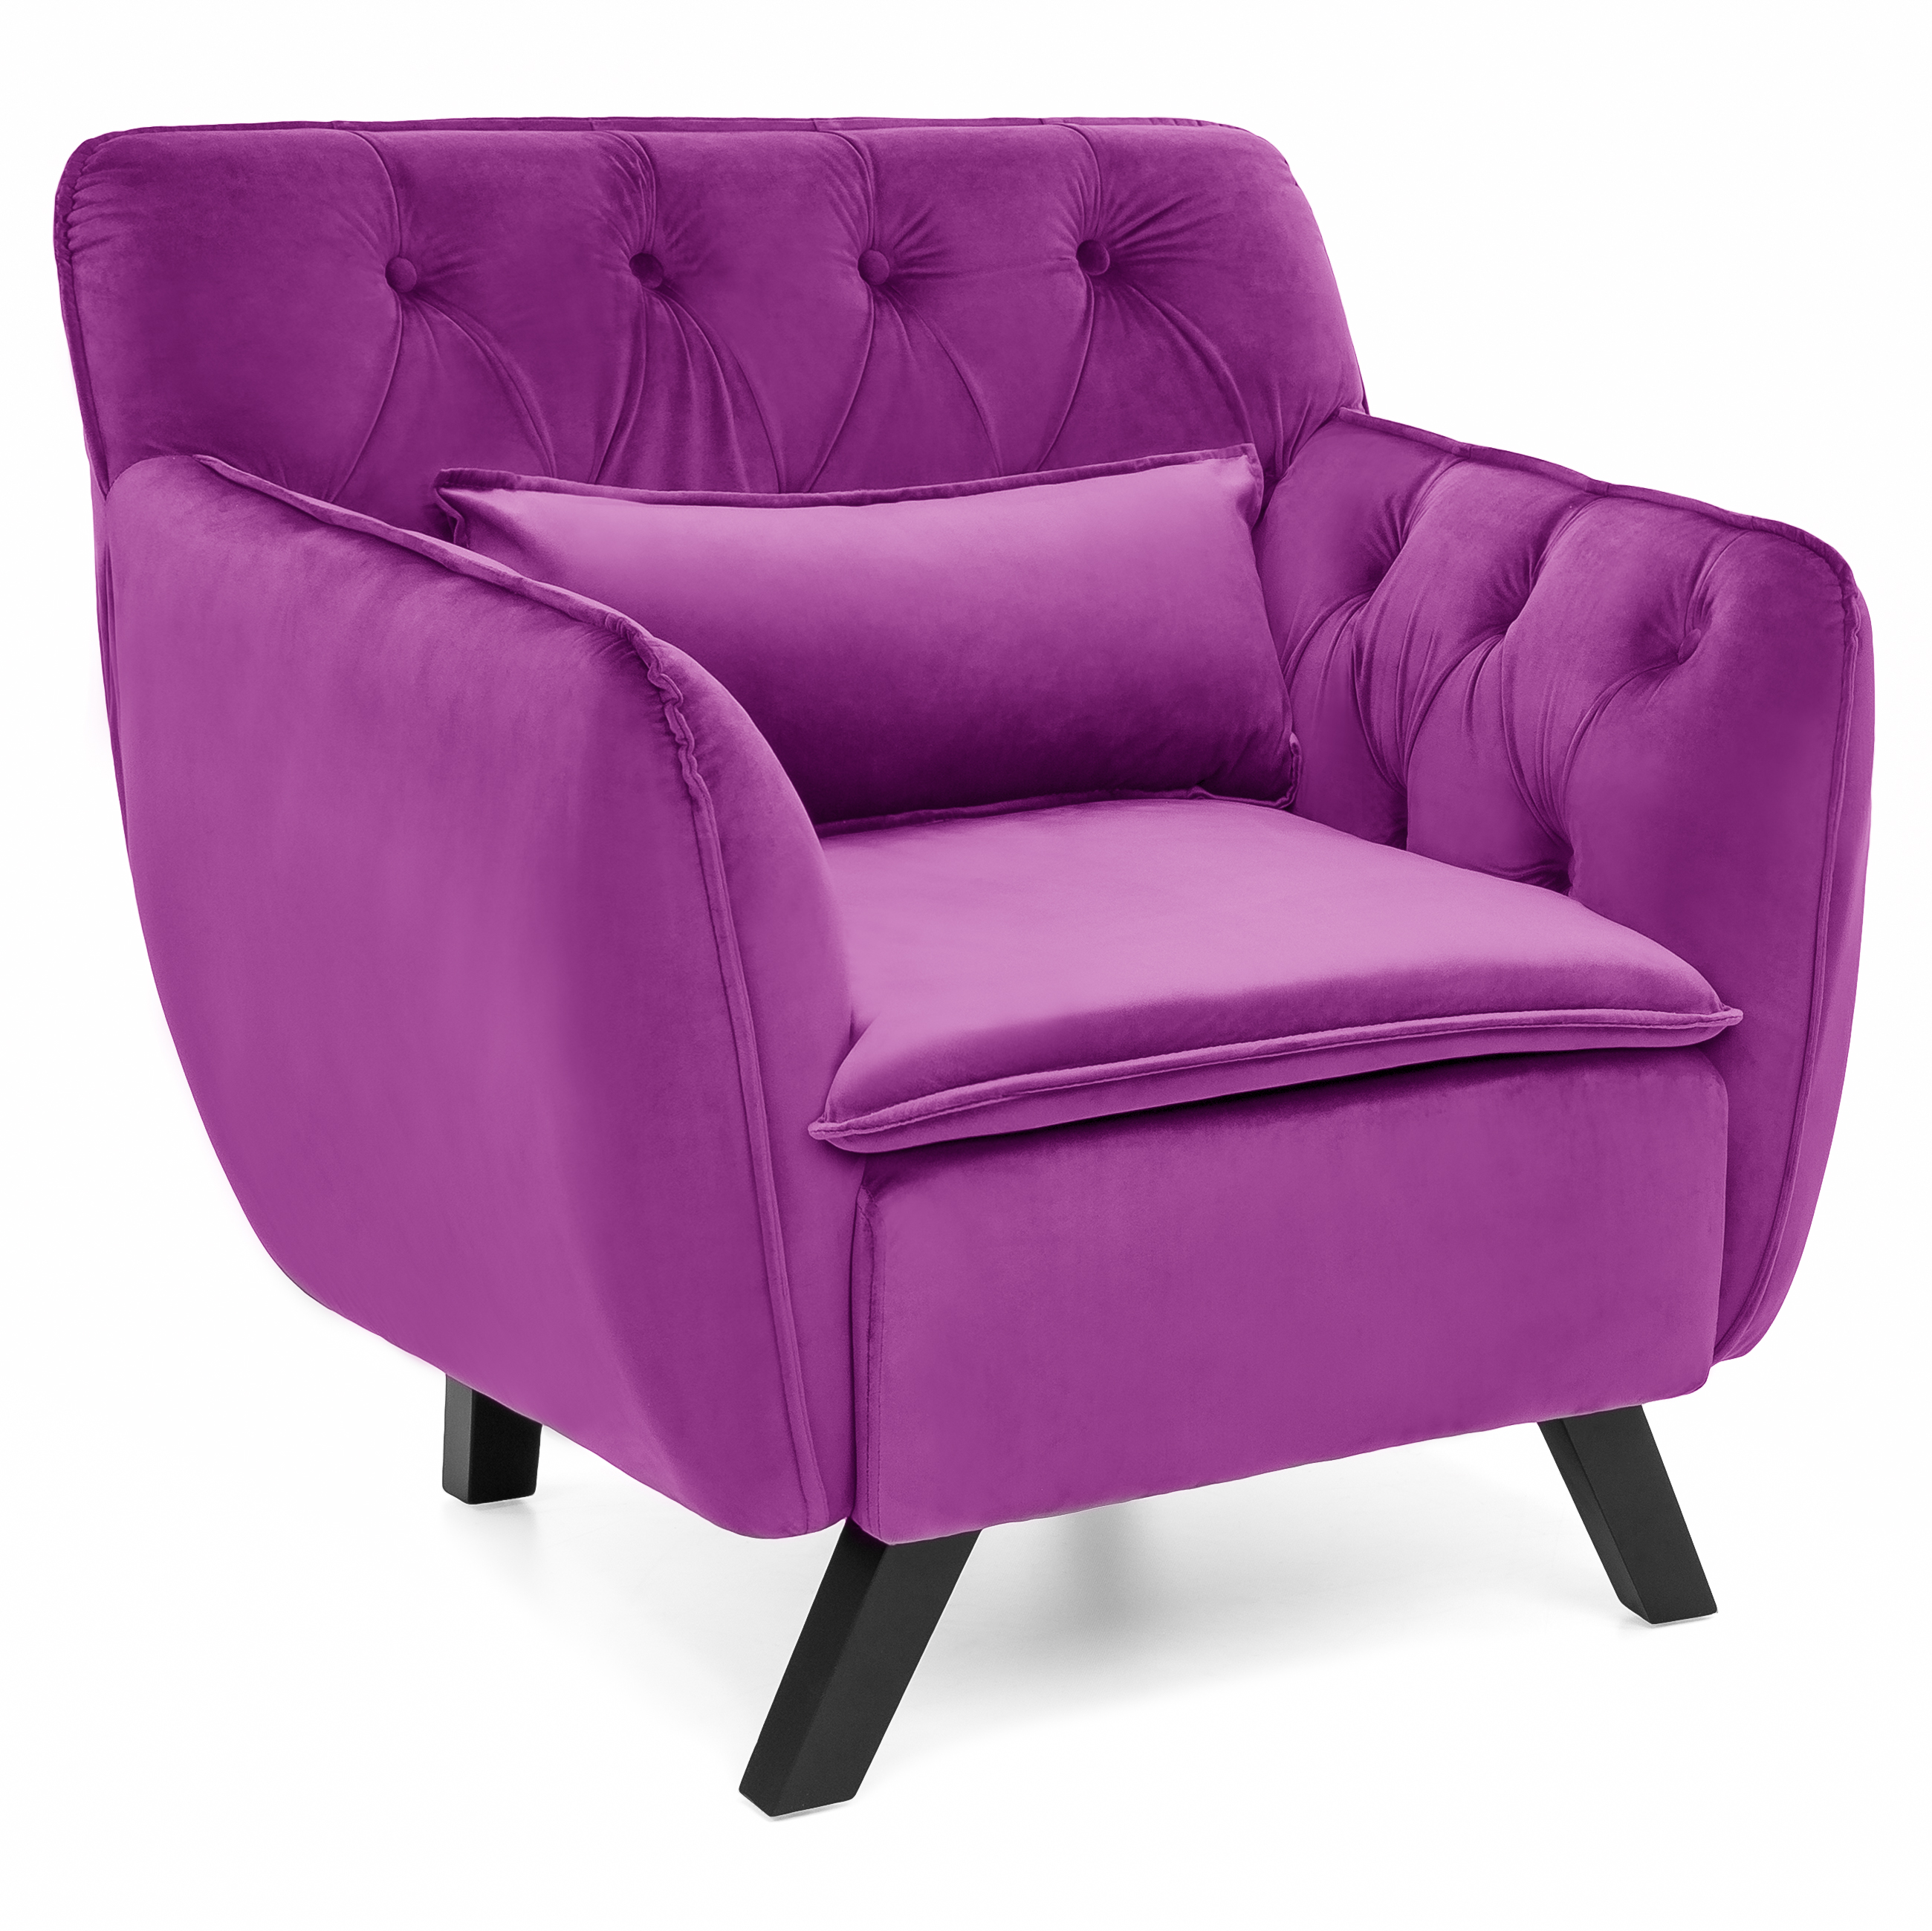 Best Choice Products Mid-Century Modern Tufted Microfiber Accent Chair w/ Removable Lumbar Pillow (Purple)